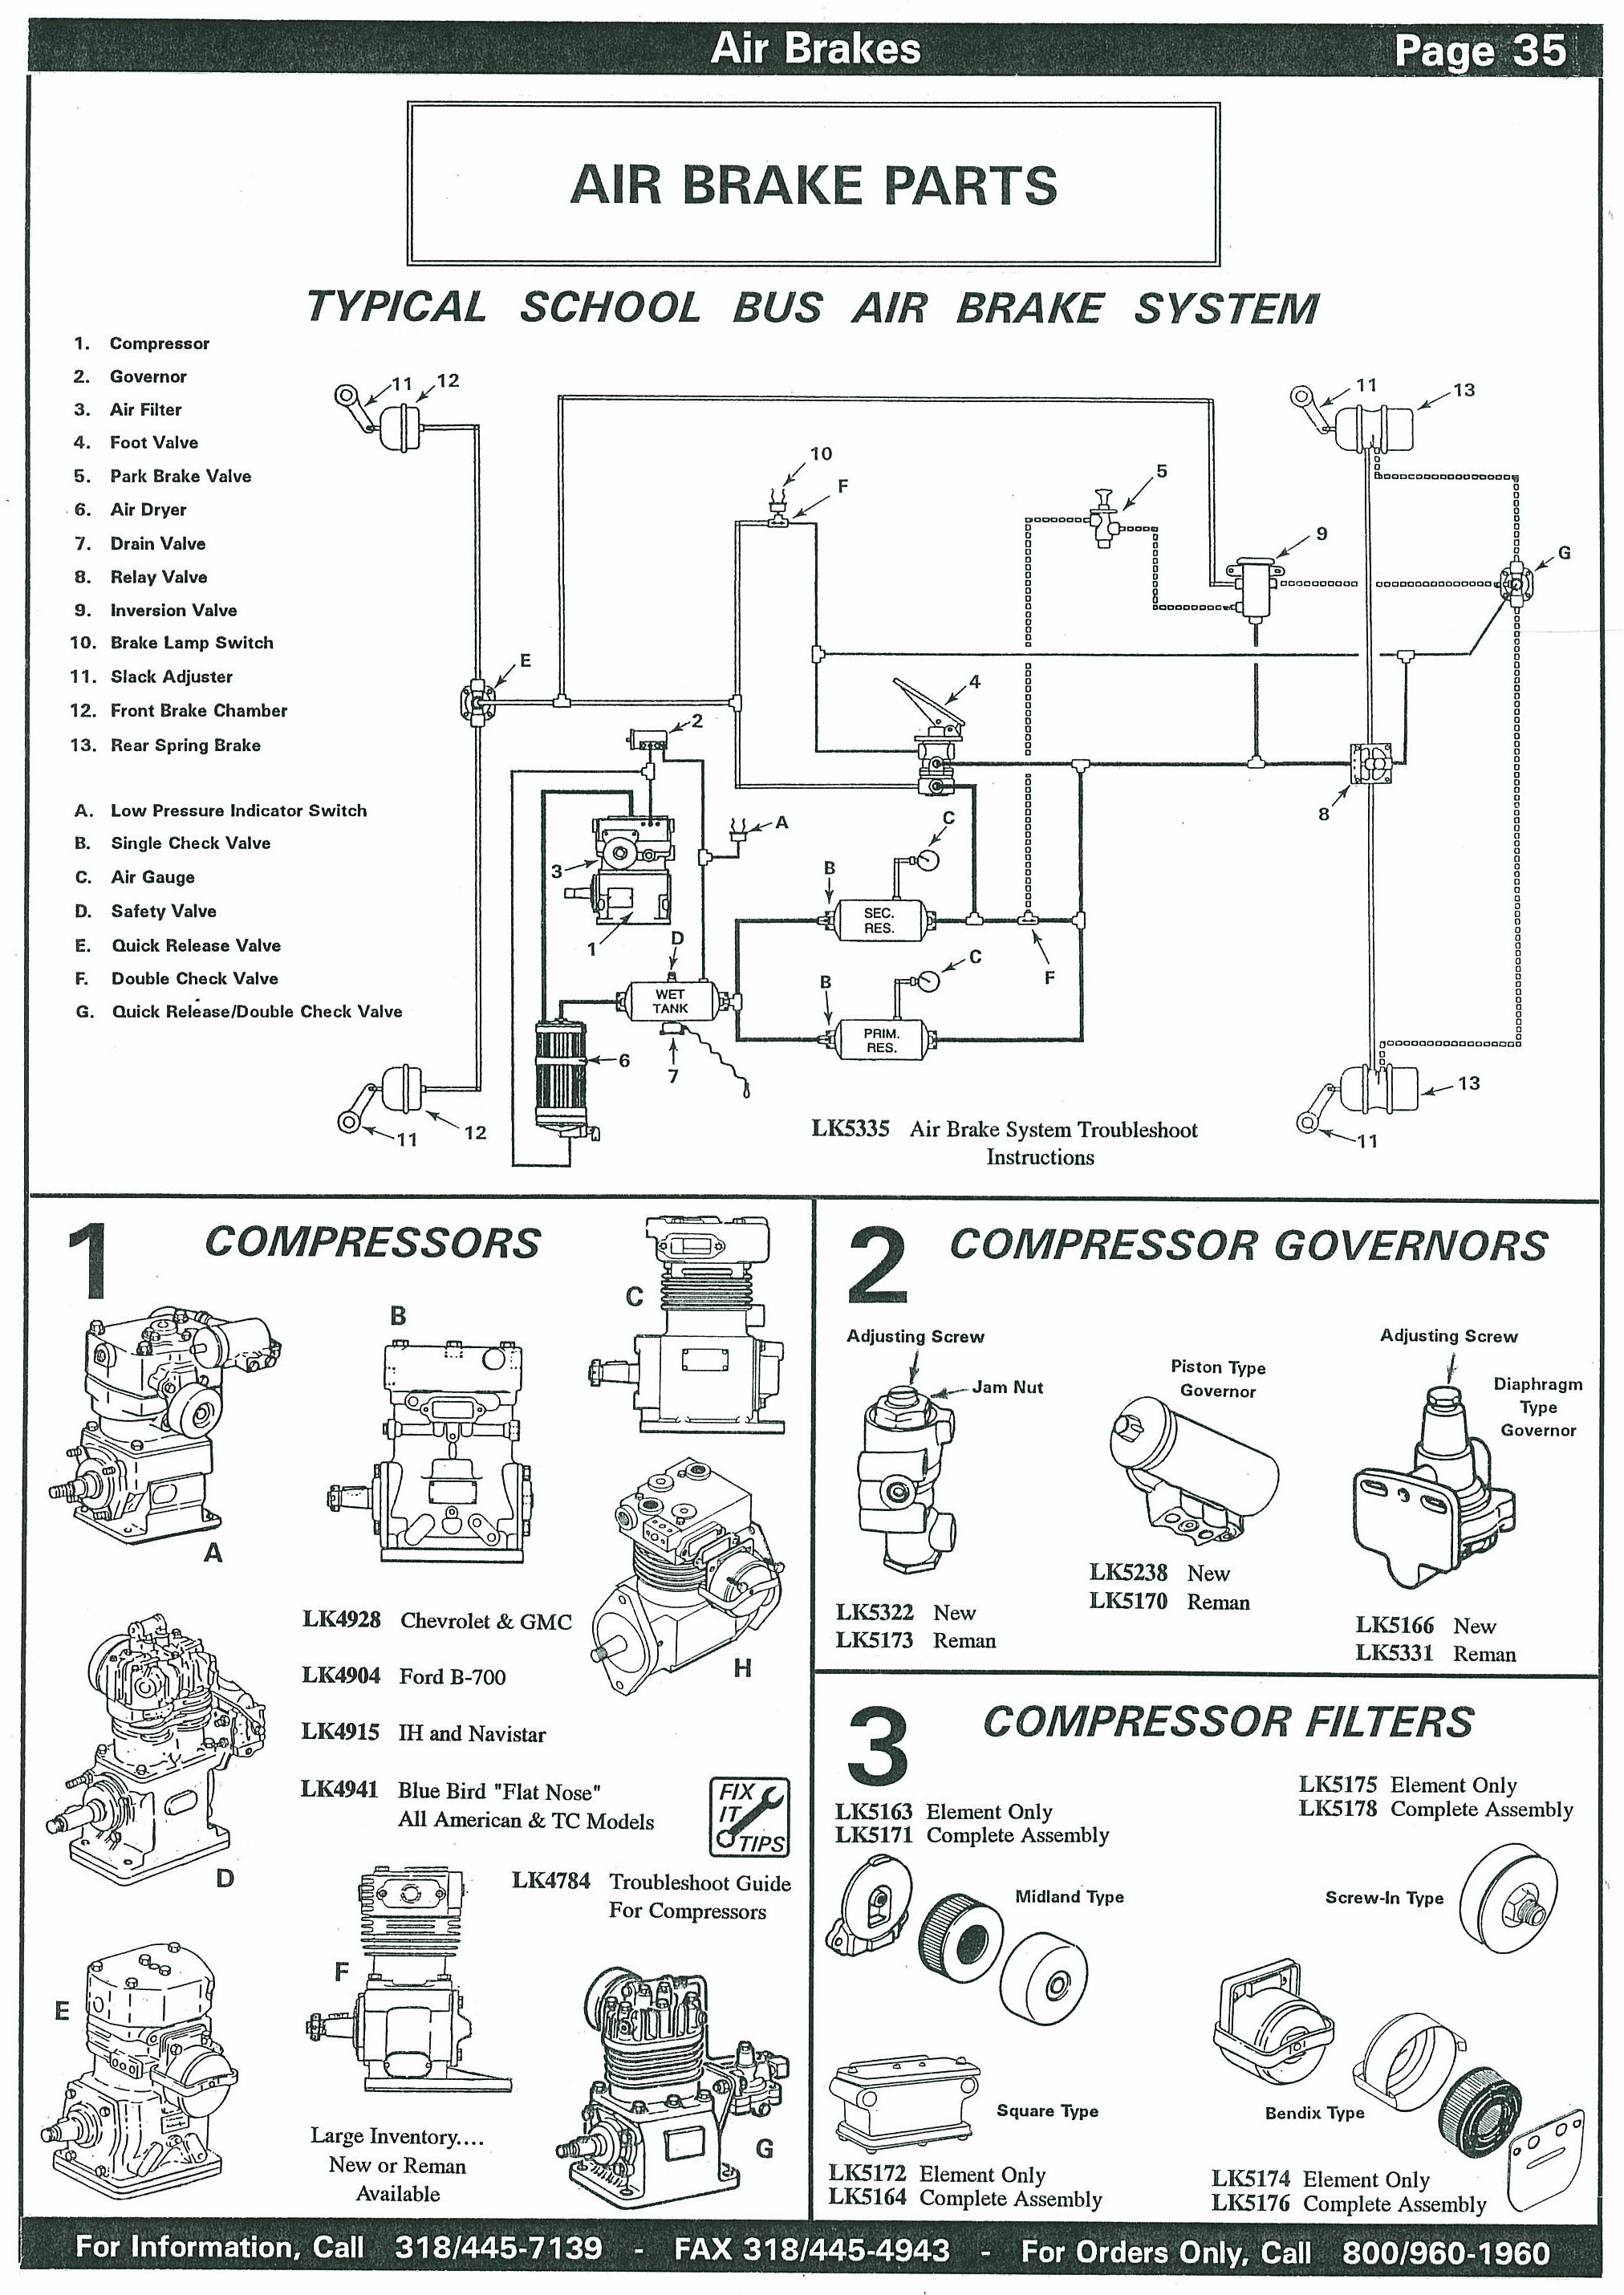 School Bus Air Brake Compressors